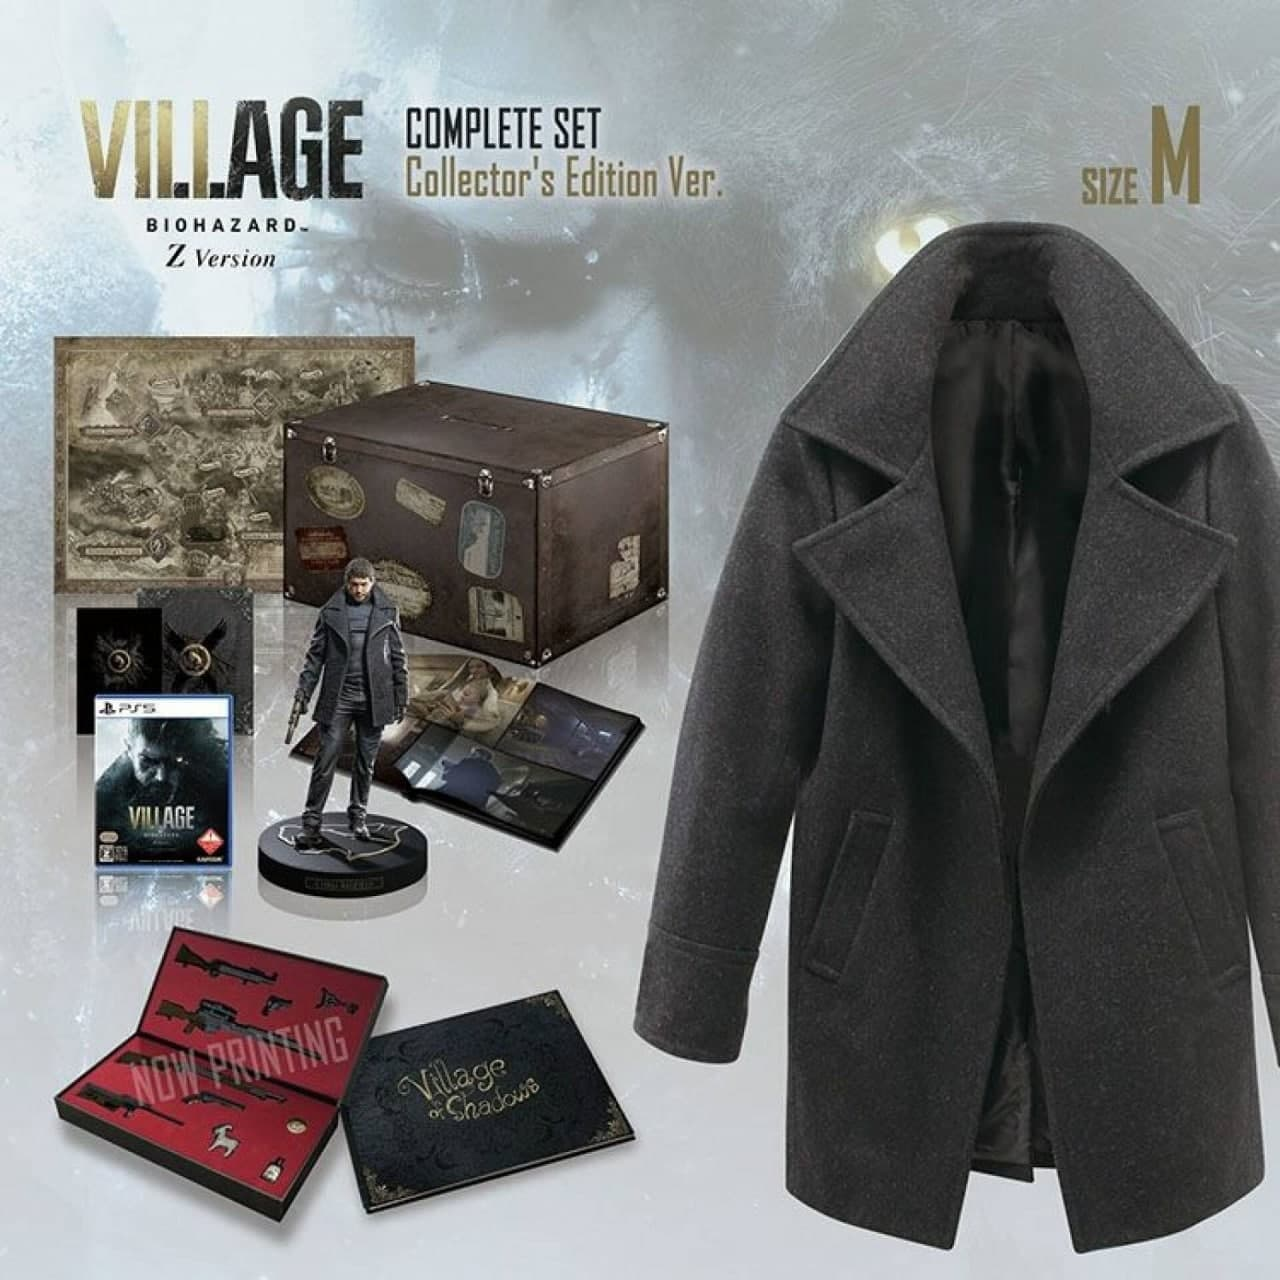 Resident Evil Village: La Collector's Edition col cappotto di Chris Redfield